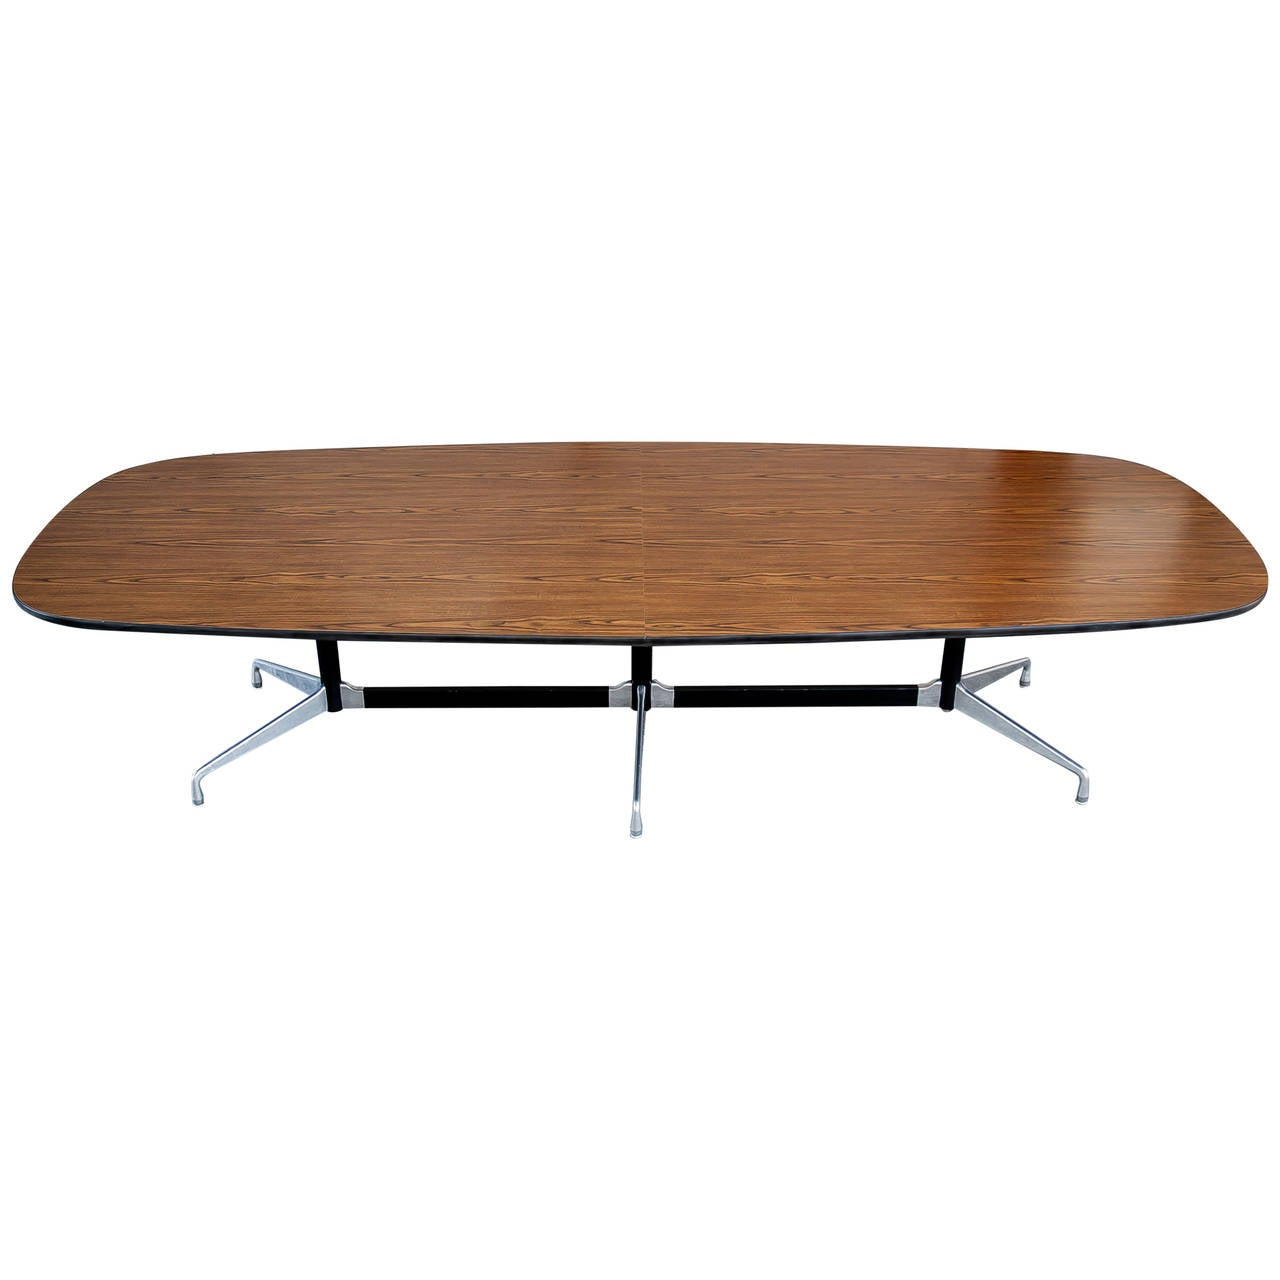 Vintage eames conference table for herman miller at 1stdibs - Herman miller eames table ...